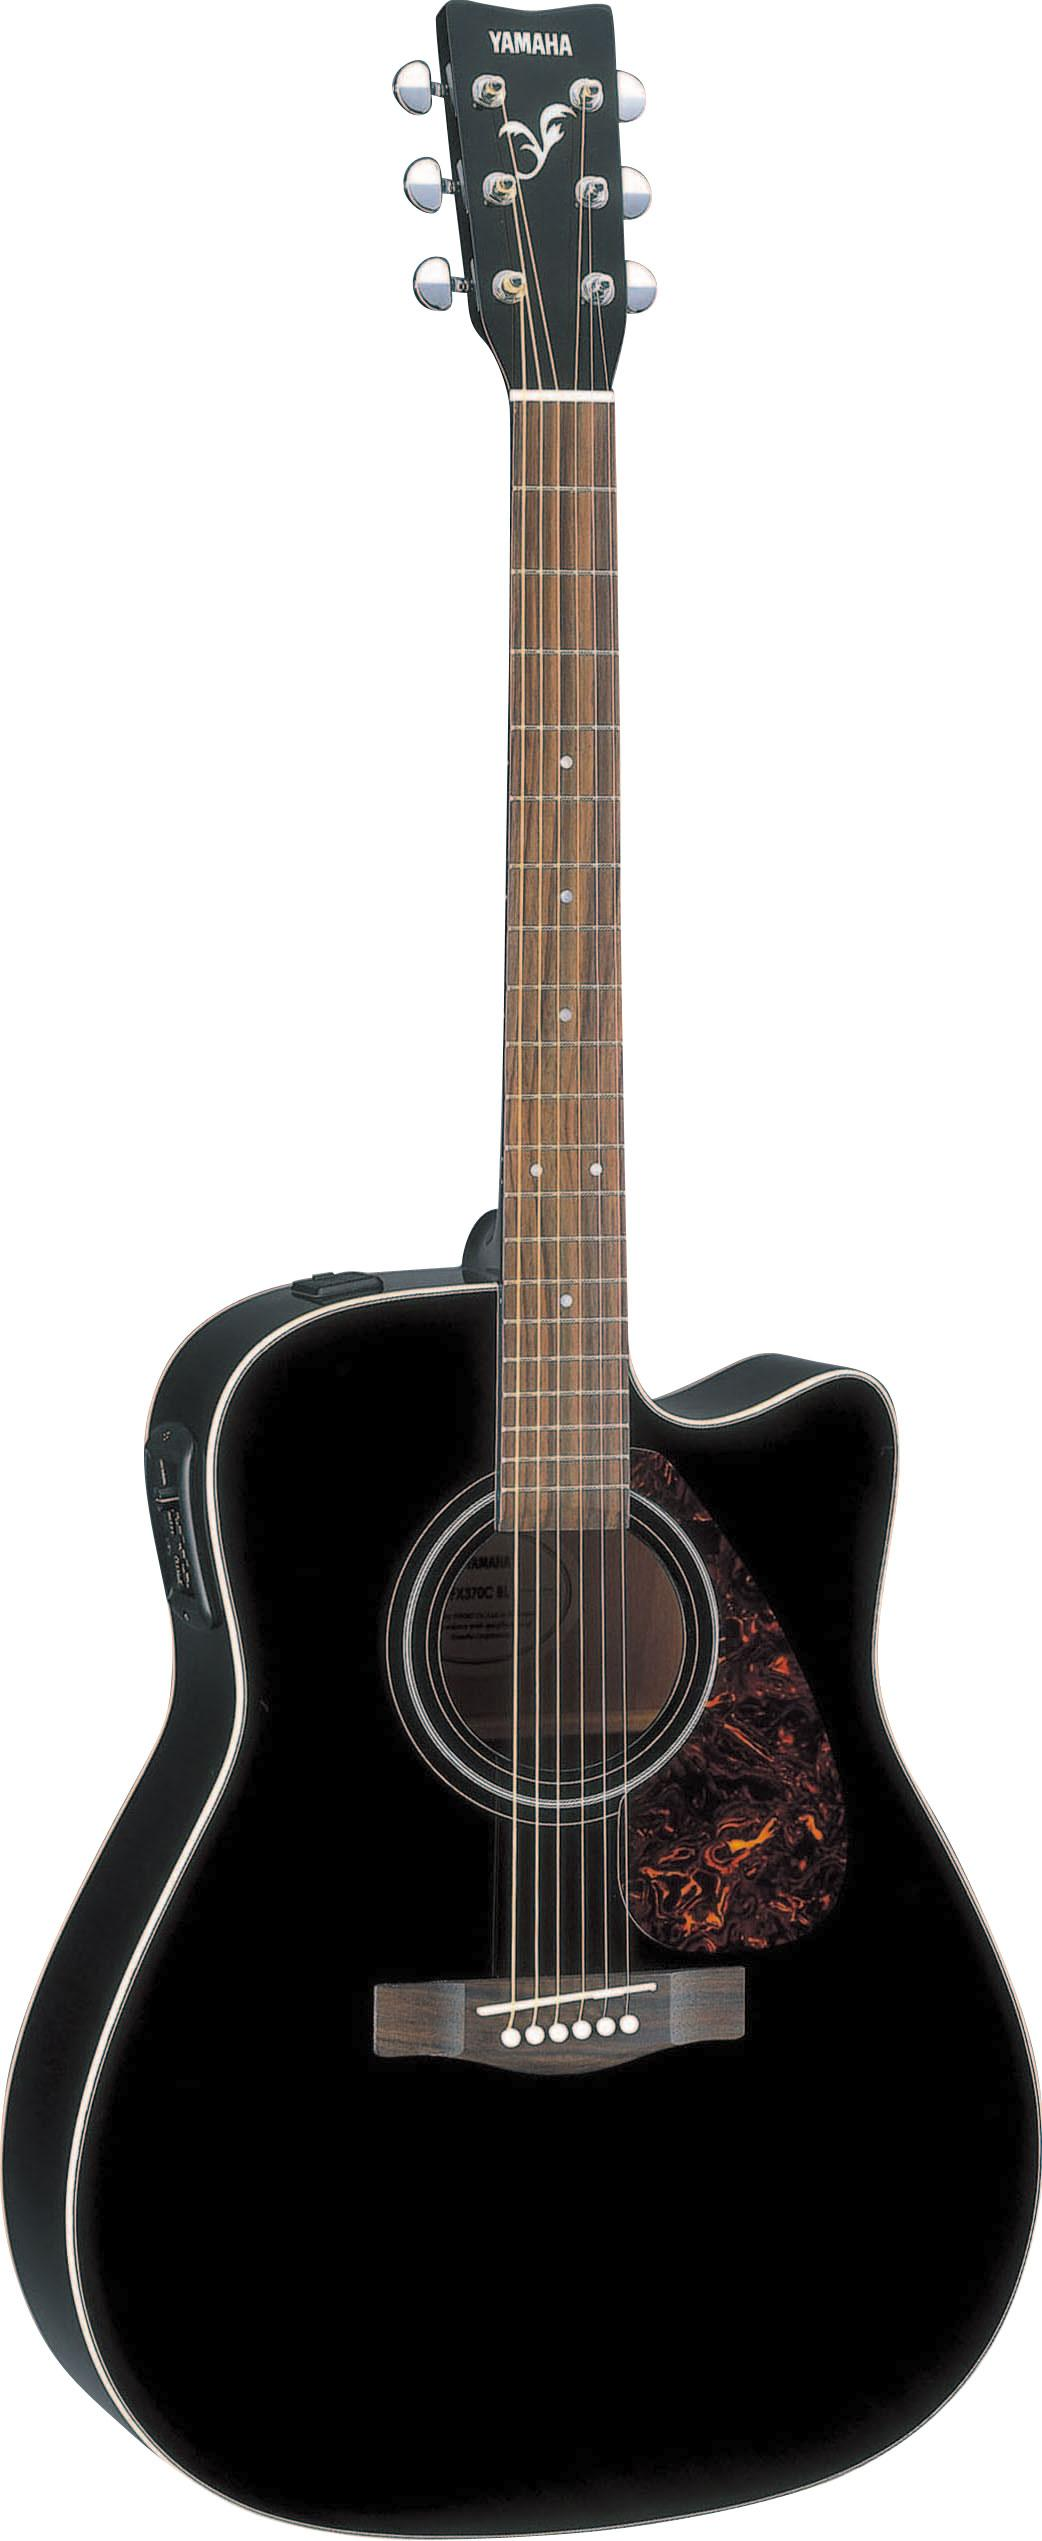 yamaha fx370c full size electro acoustic guitar black musical instruments. Black Bedroom Furniture Sets. Home Design Ideas